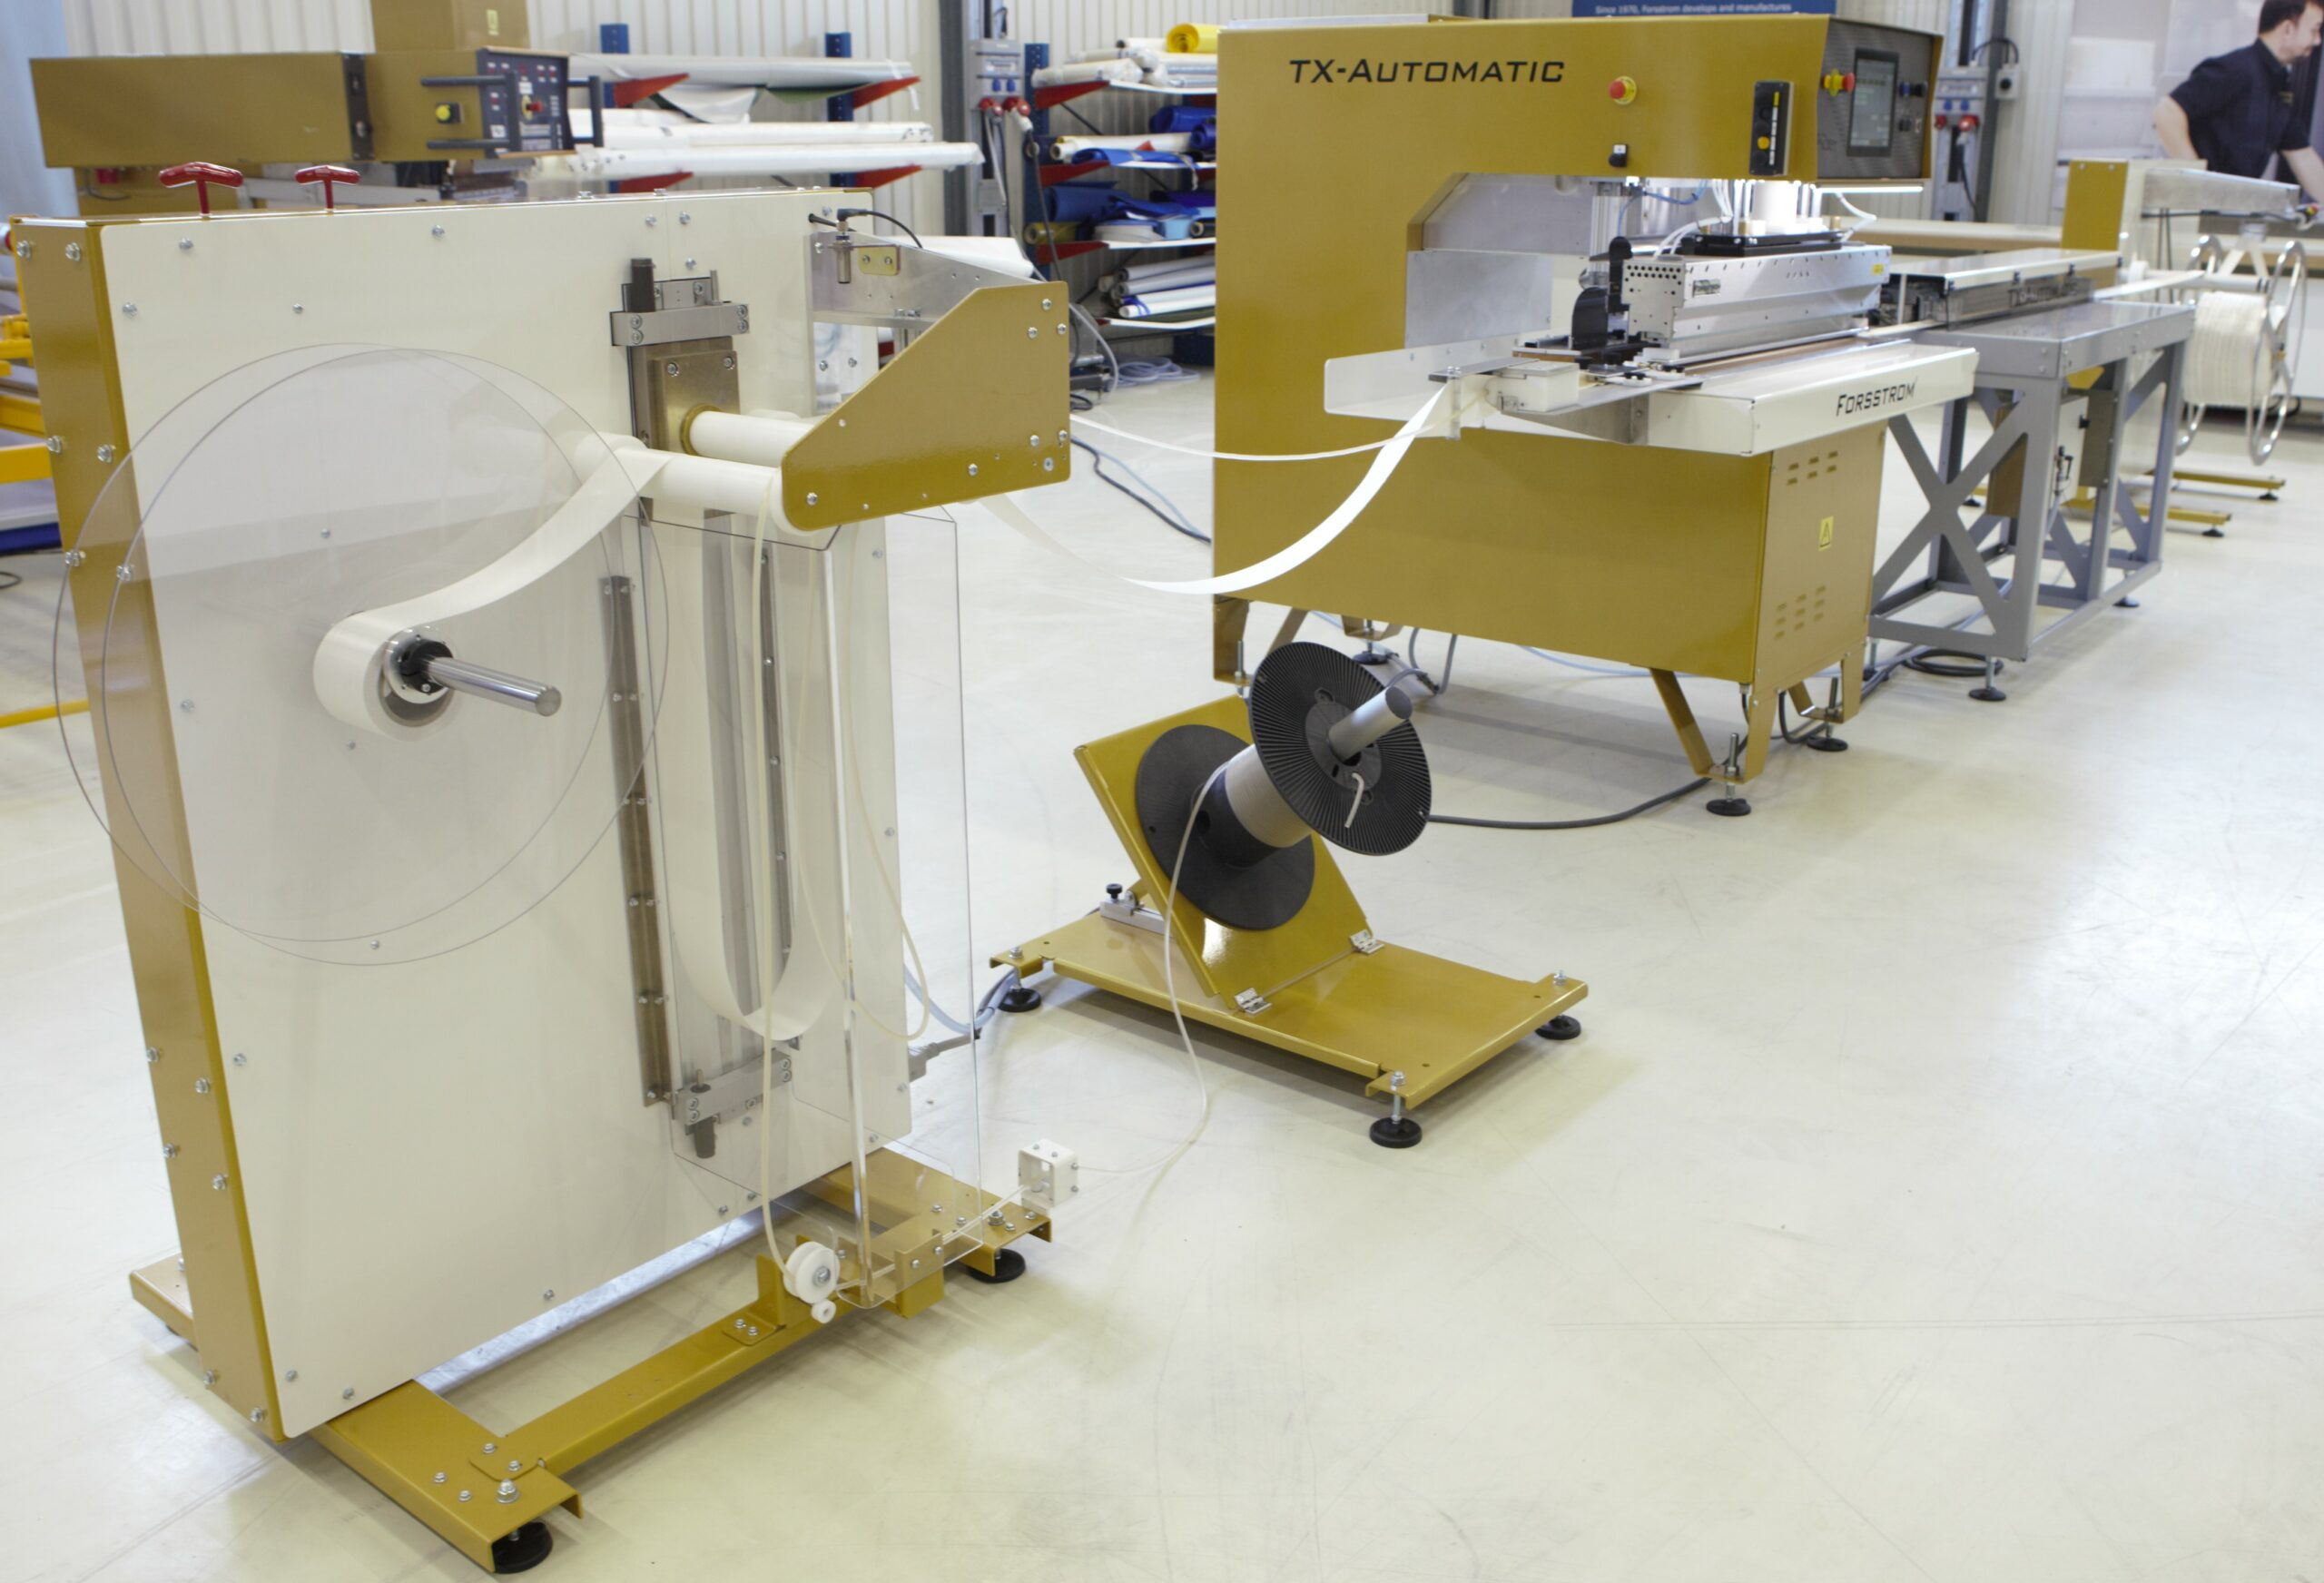 This is Forsstrom's machine TX-Automatic keder.